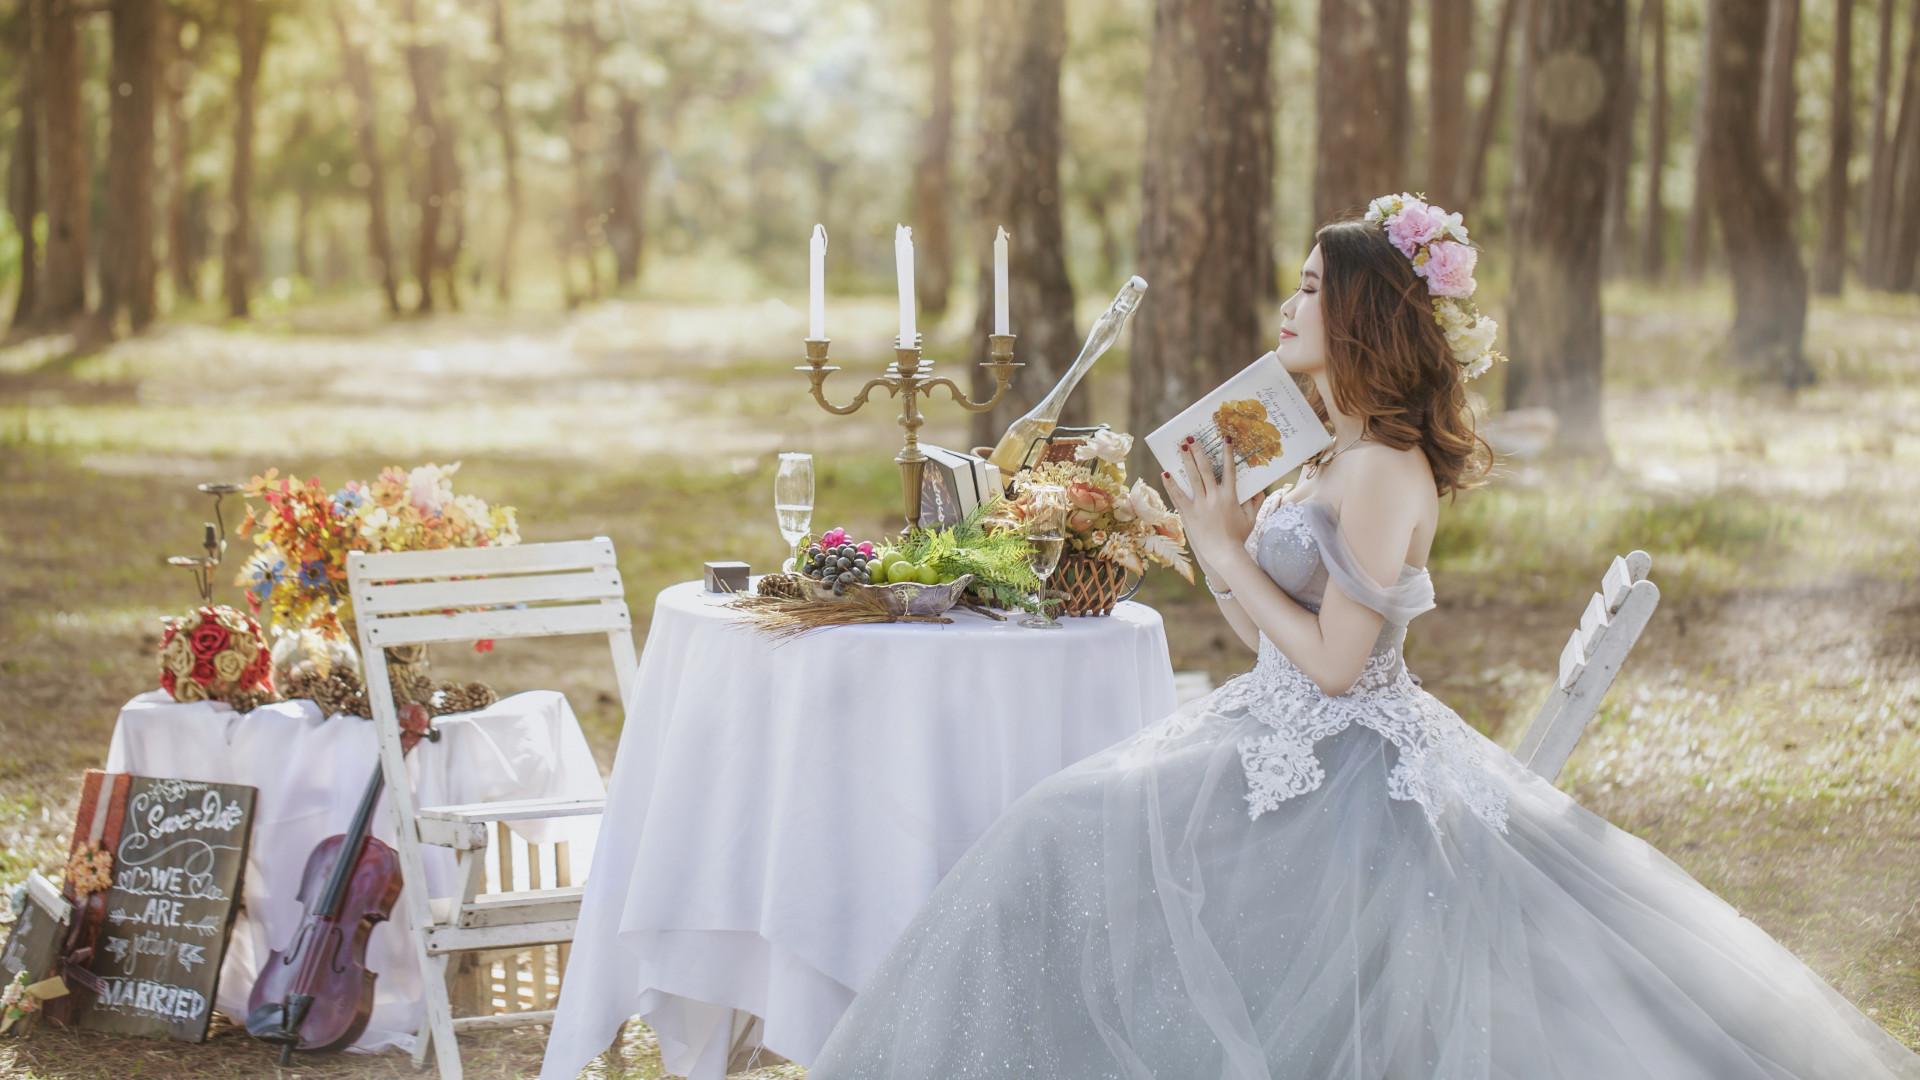 Bride in wedding outdoor scenery | 1920x1080 wallpaper